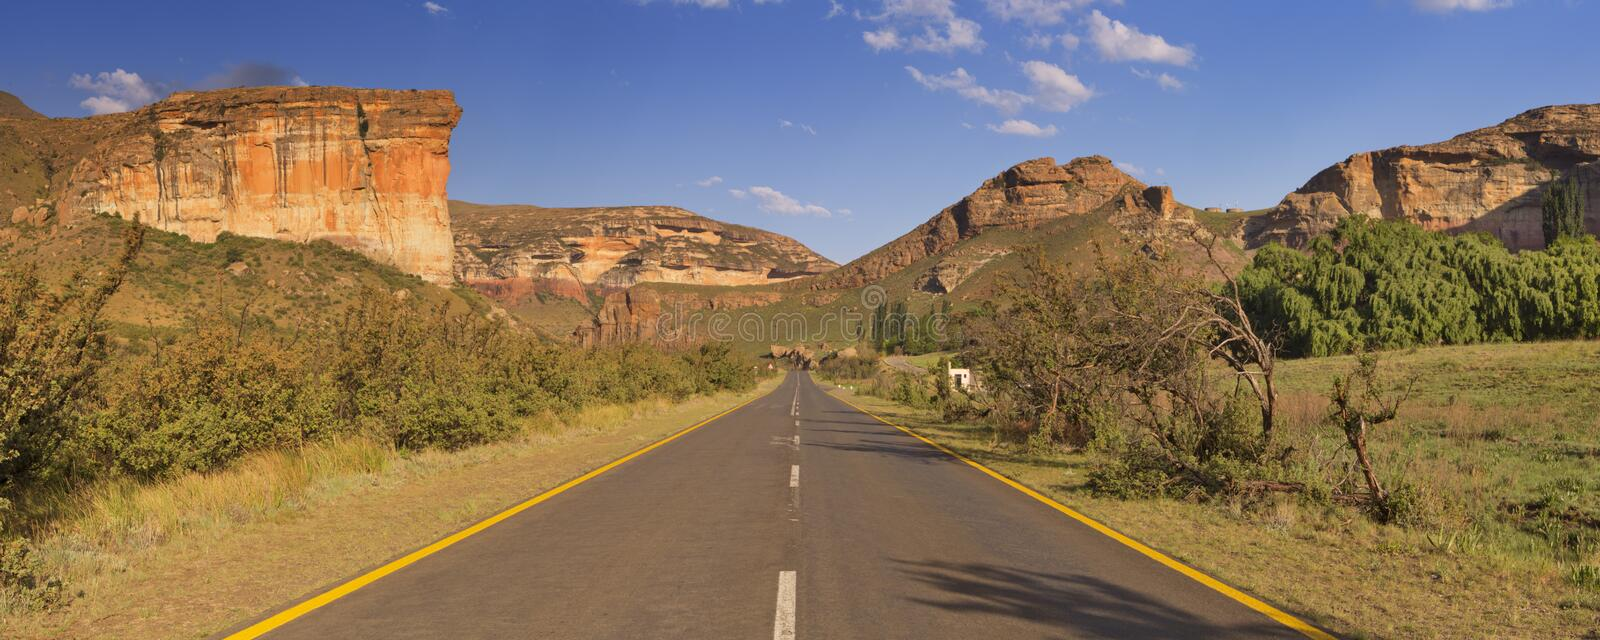 Road through the Golden Gate Highlands NP in South Africa royalty free stock photo